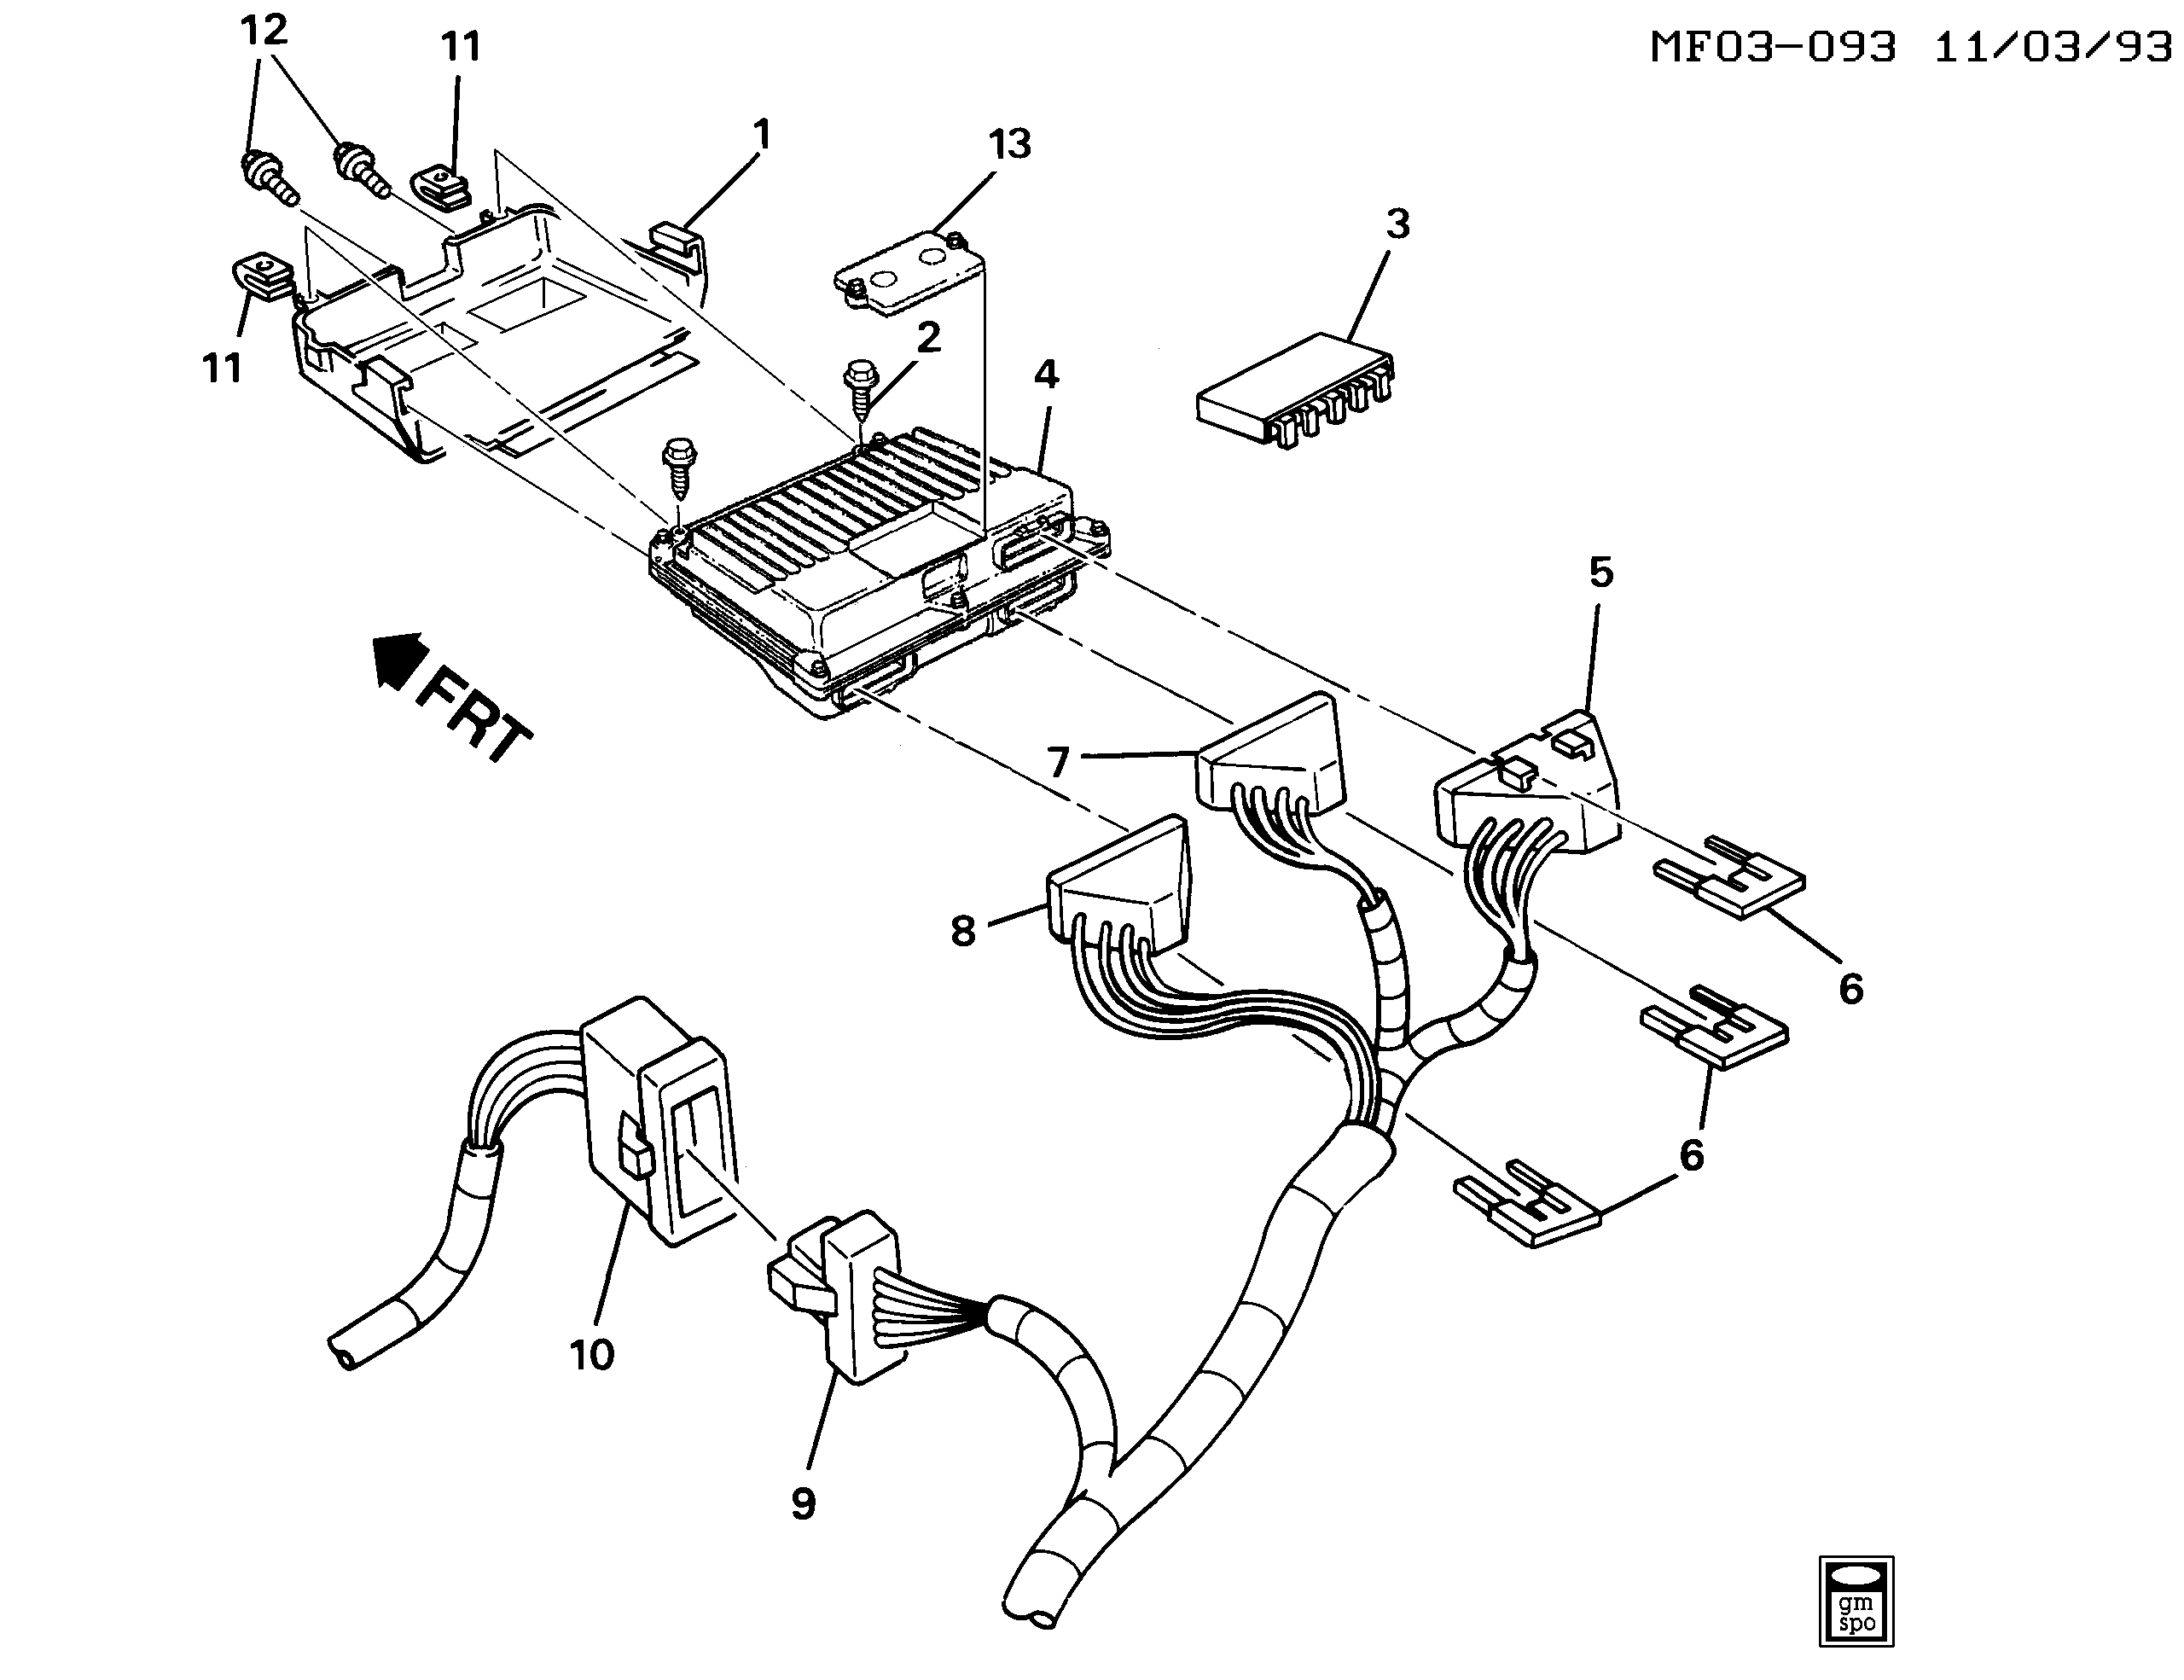 Wiring Harnes For 93 Camaro